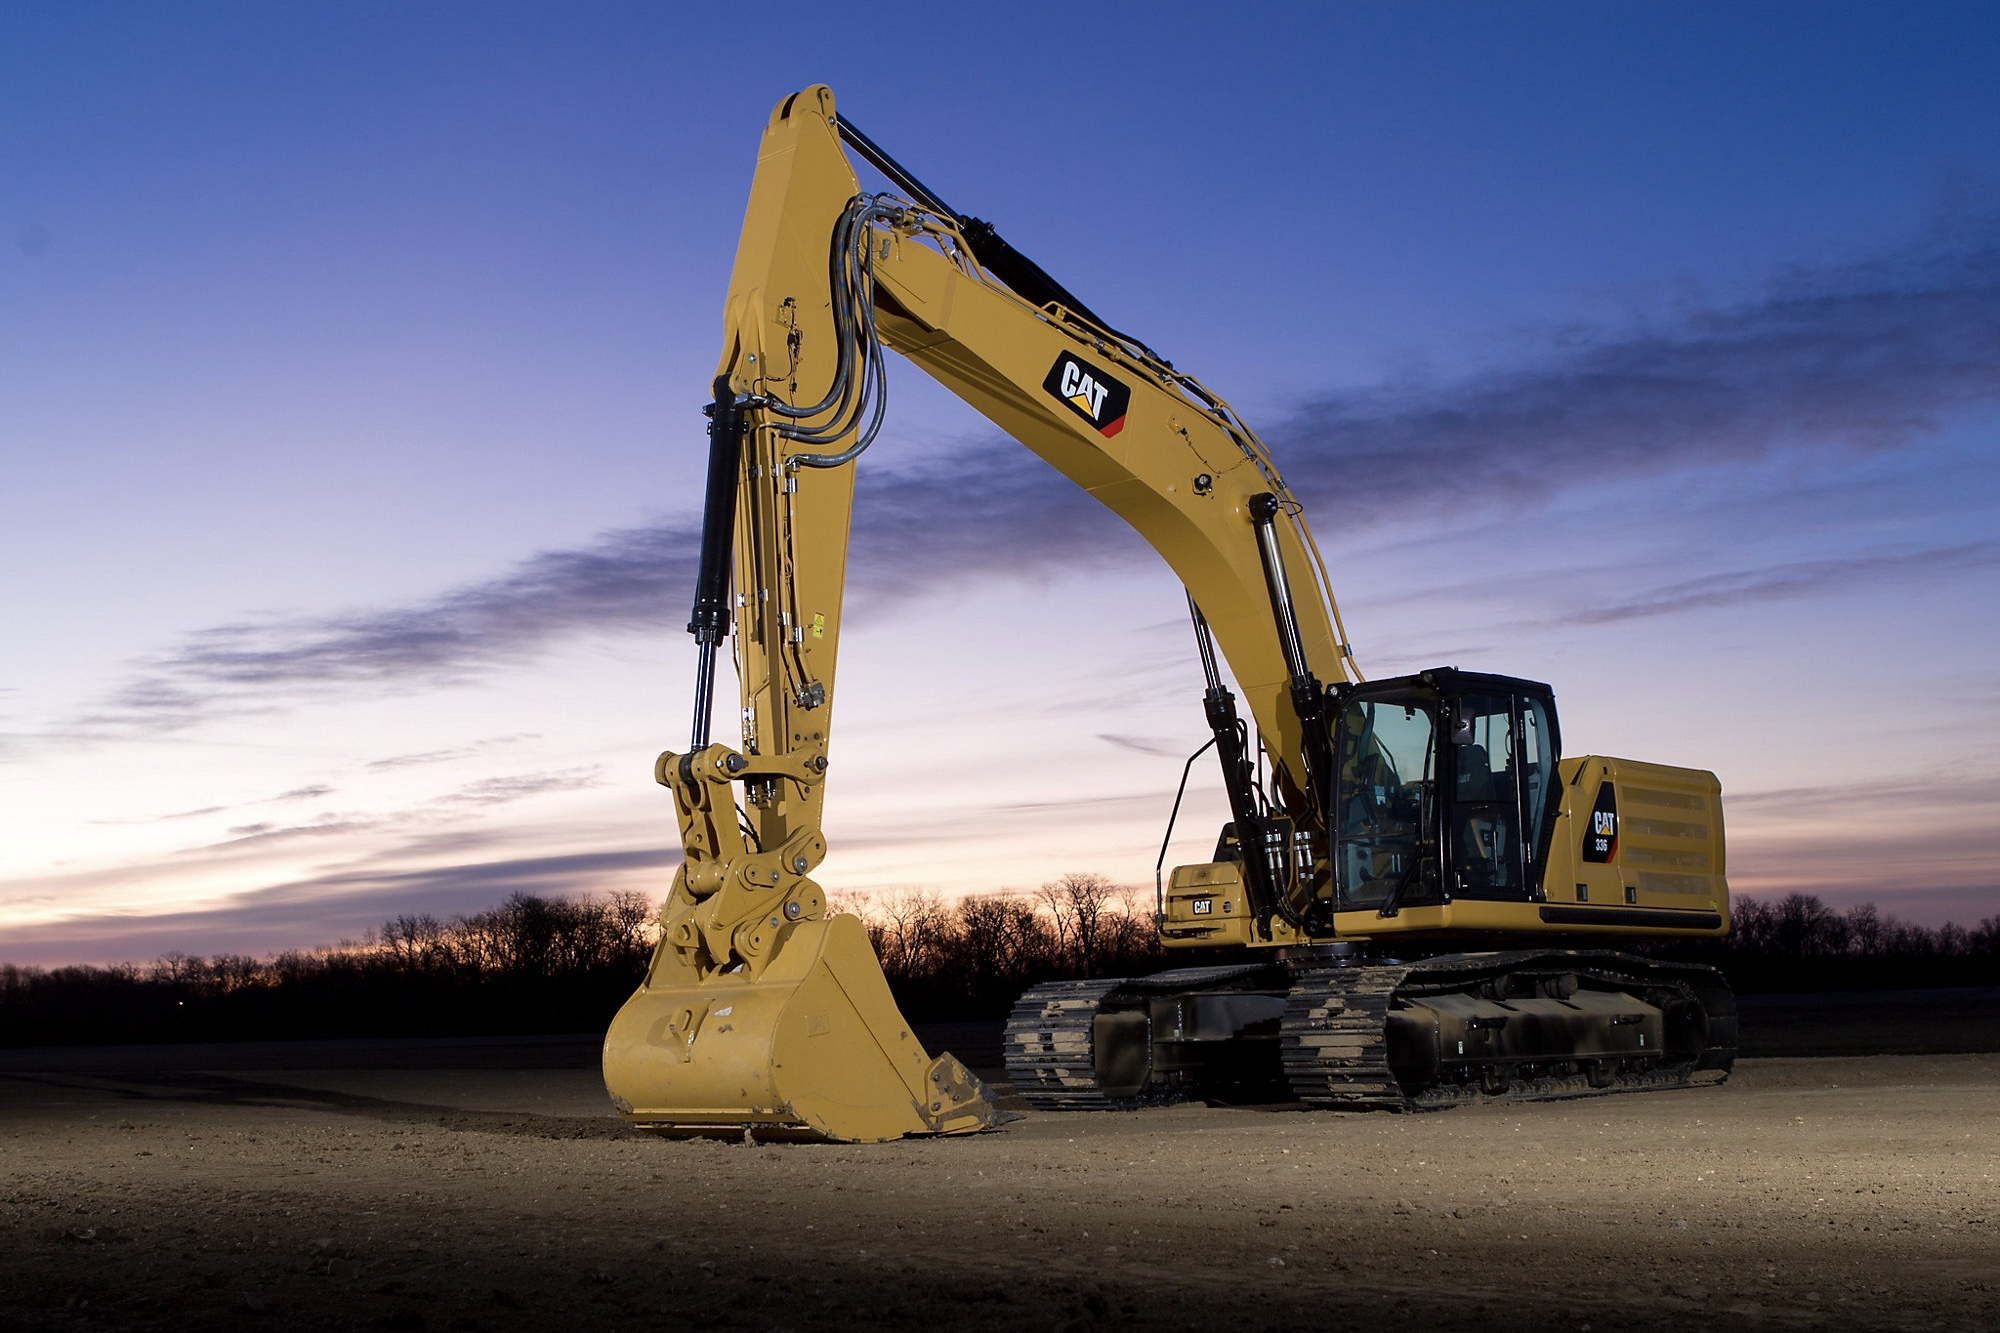 The Cat 336 is the latest technologically loaded excavator